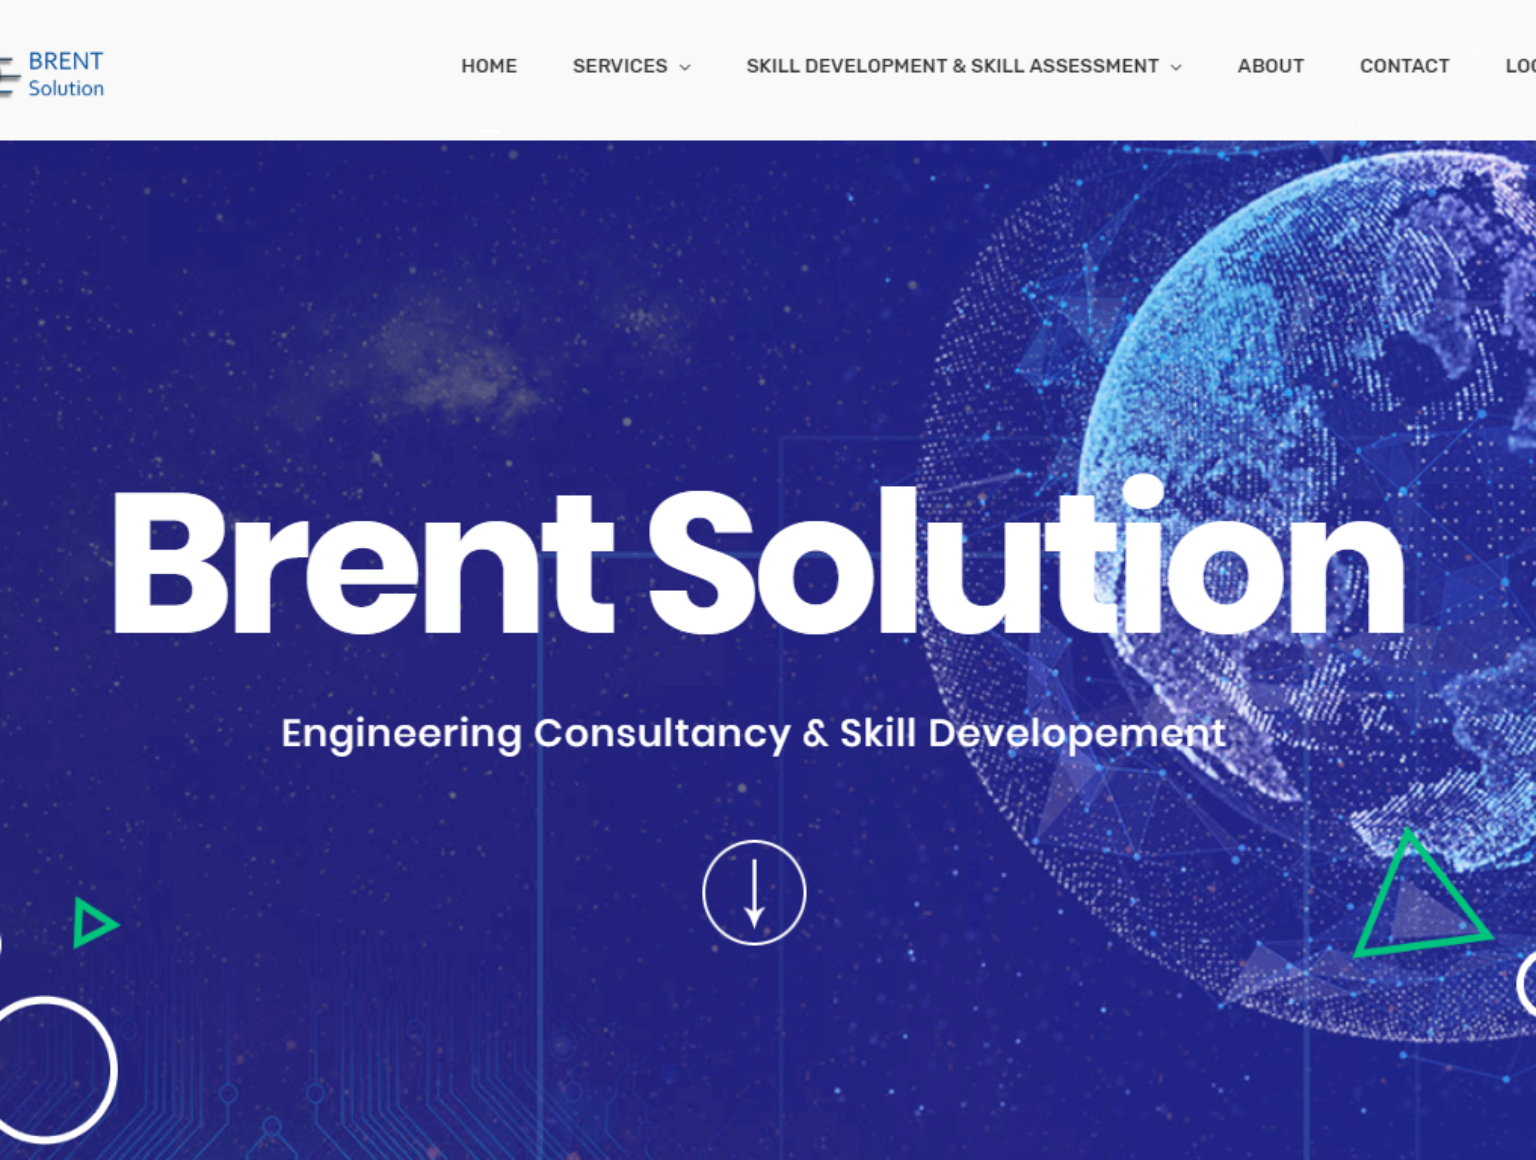 Brent Solution